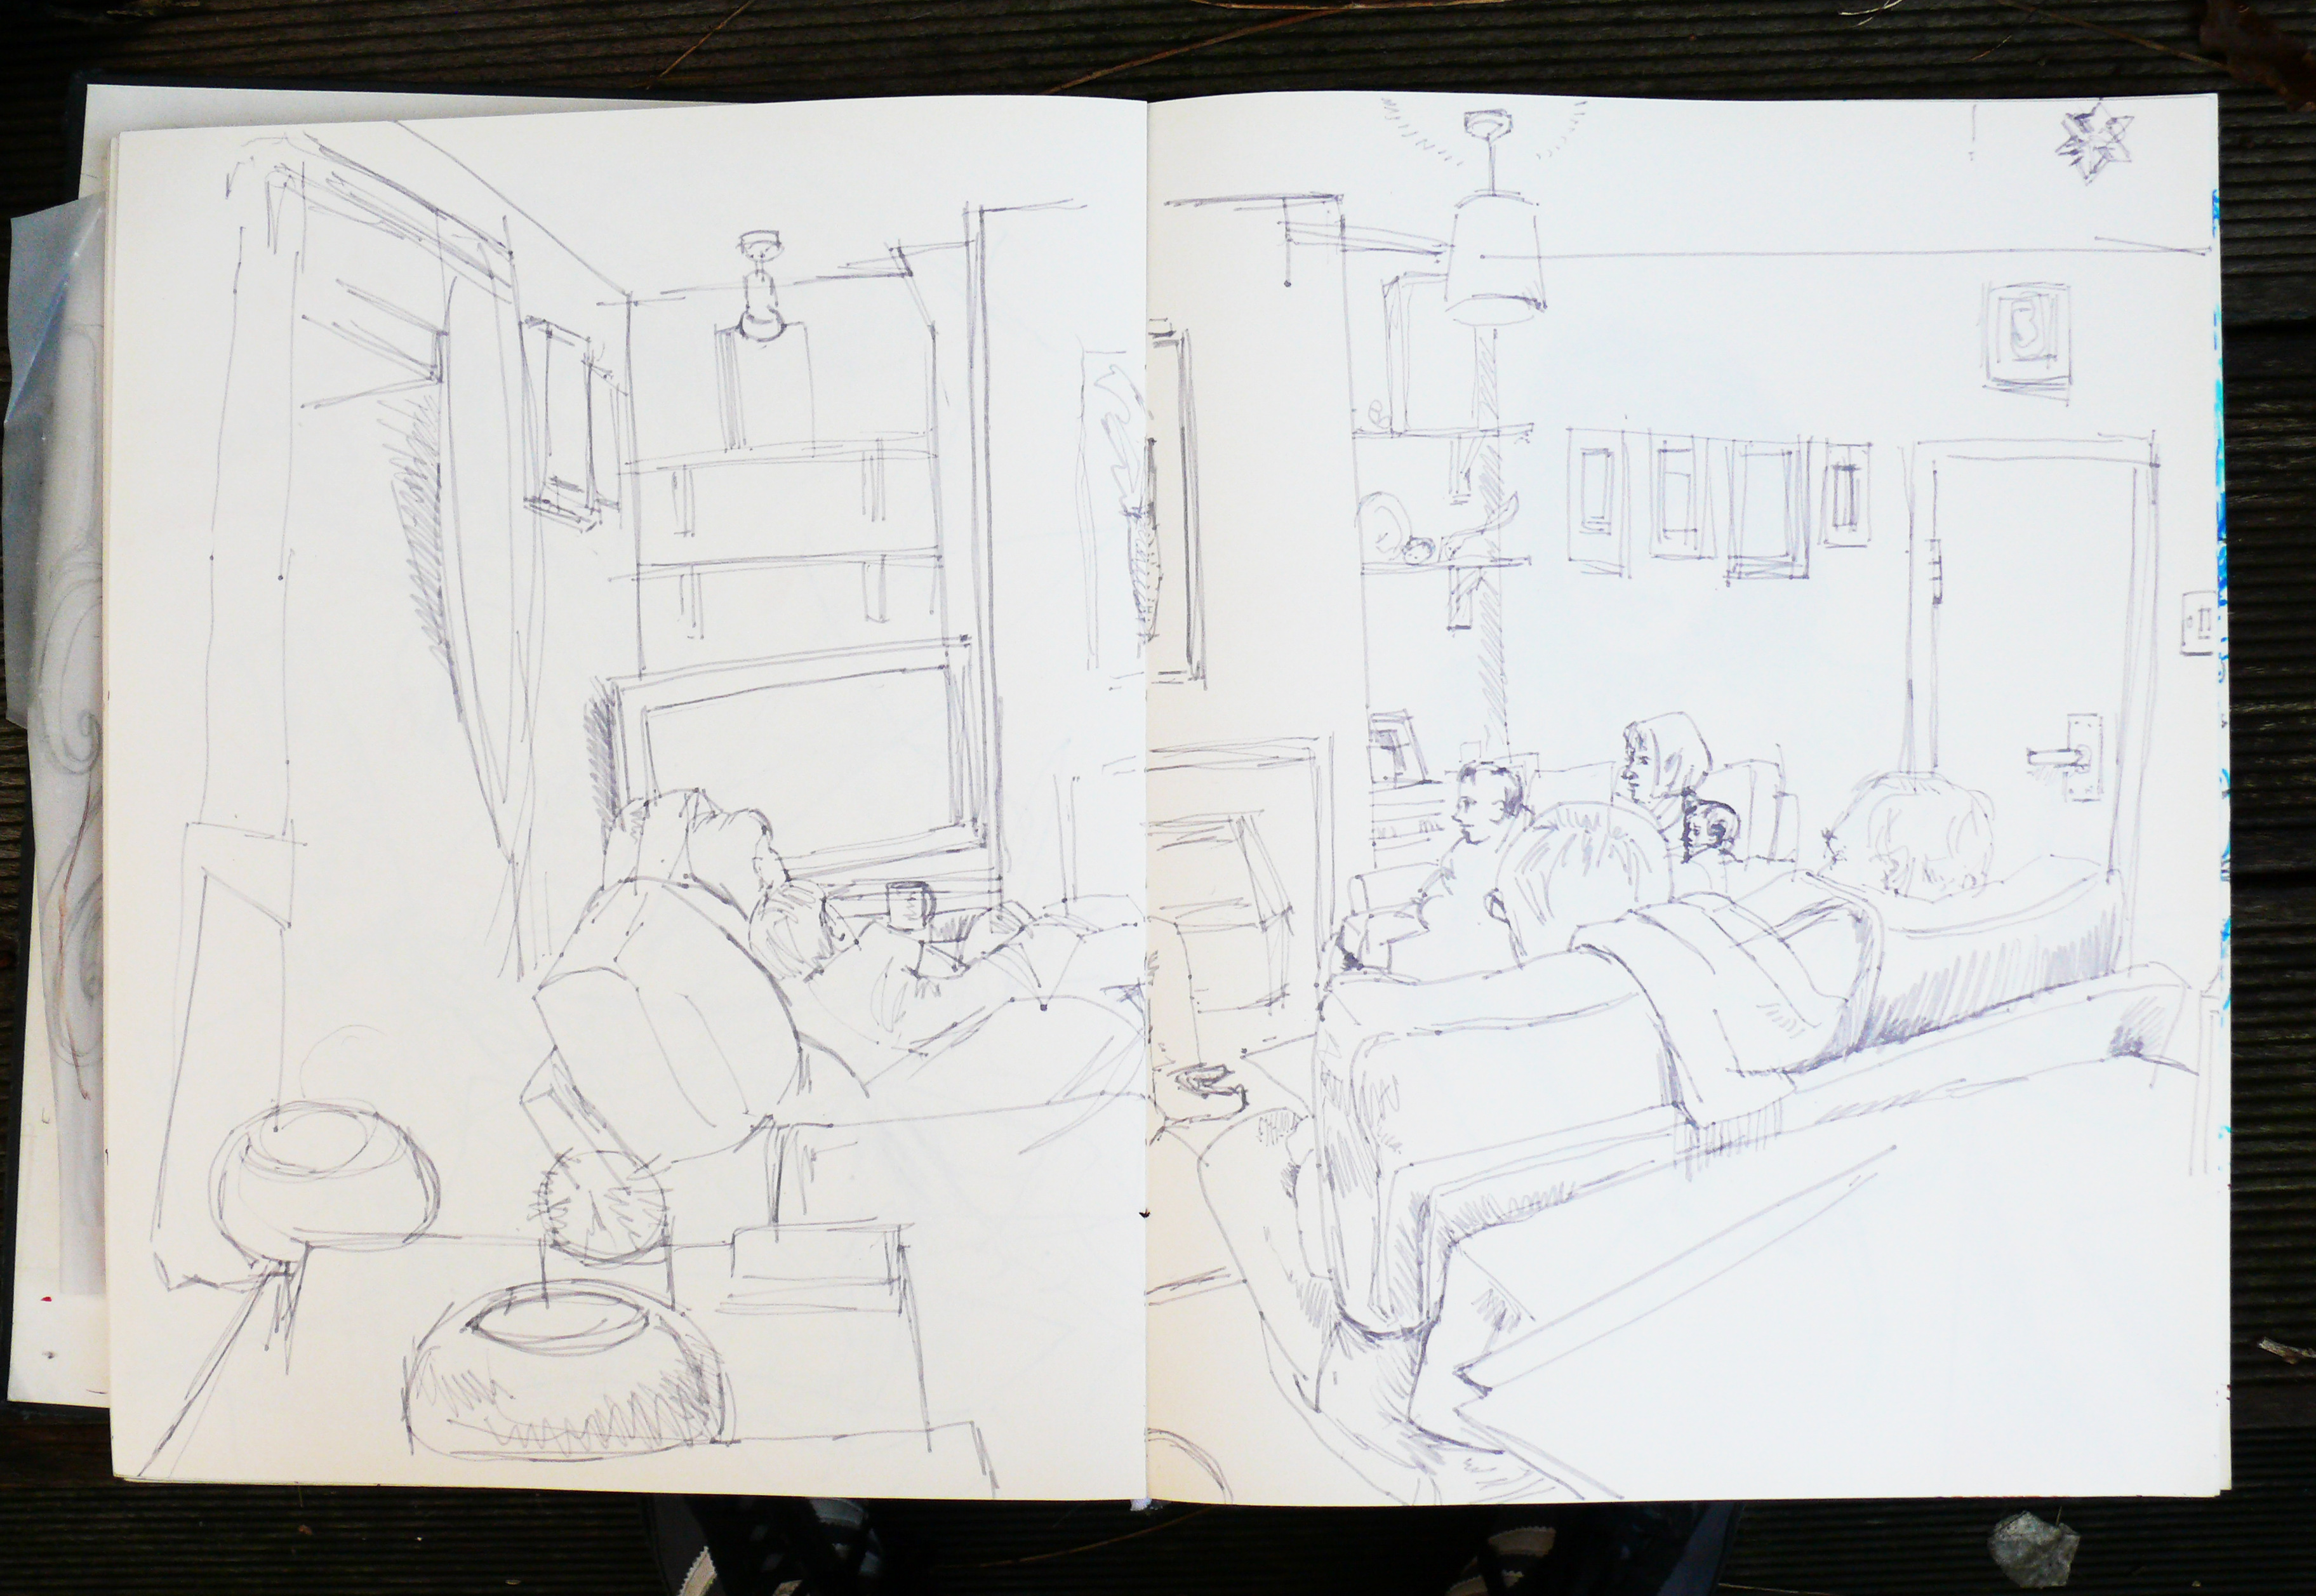 Family Watching tv Together Drawing Family Watching tv Sketch